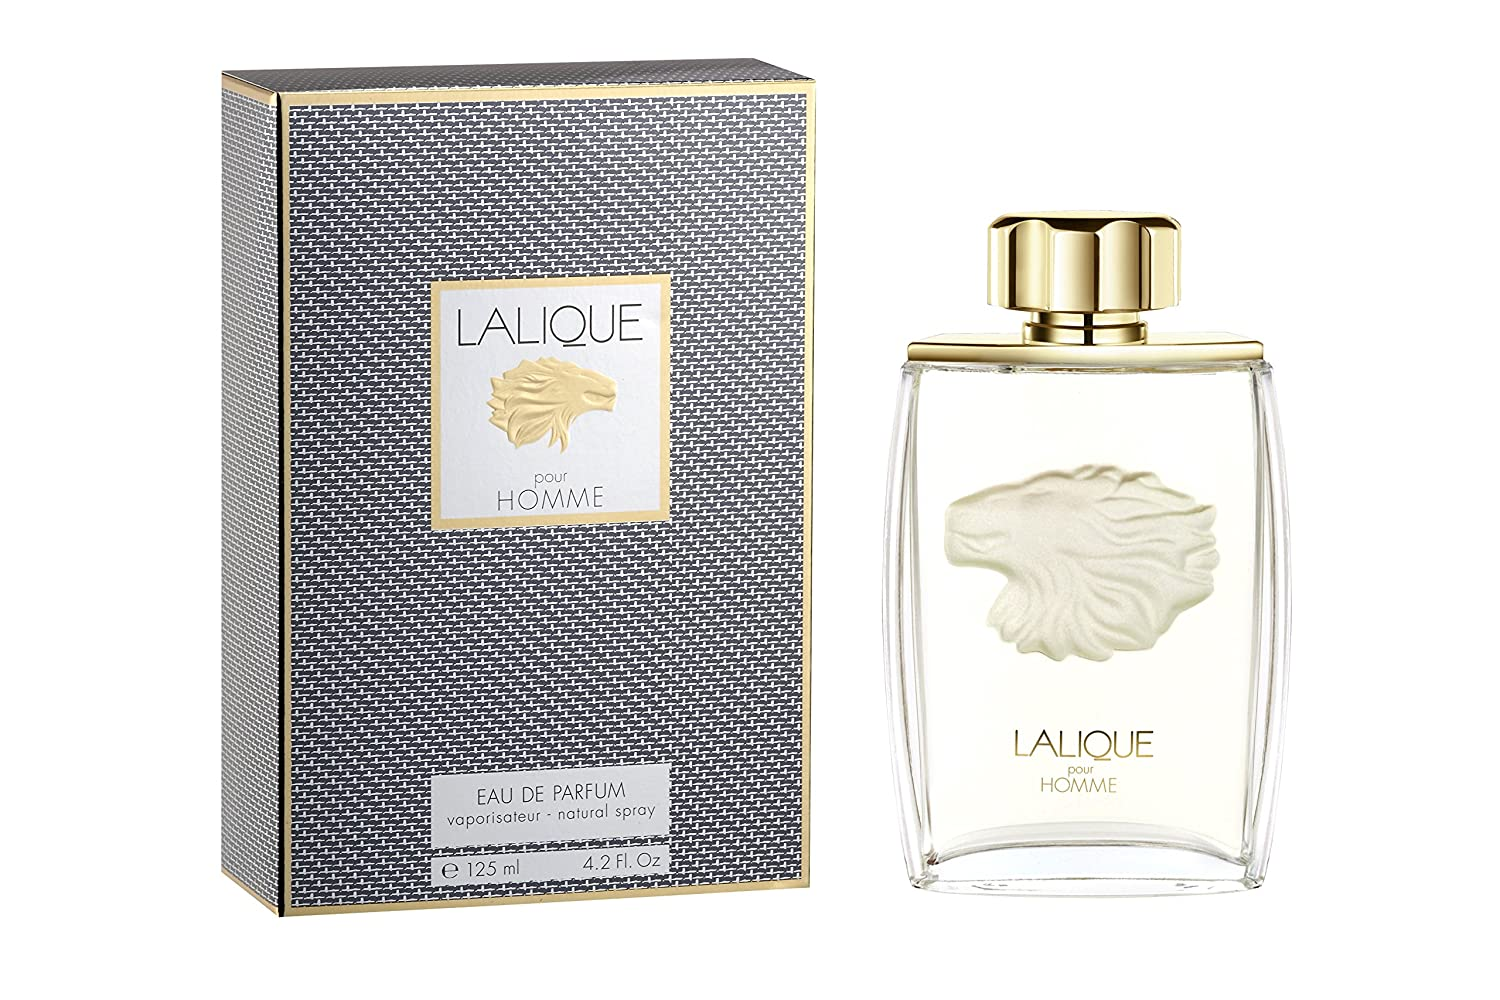 Lalique By Lalique For Men. Eau De Parfum Spray 4.2 Ounces 128307 85212201